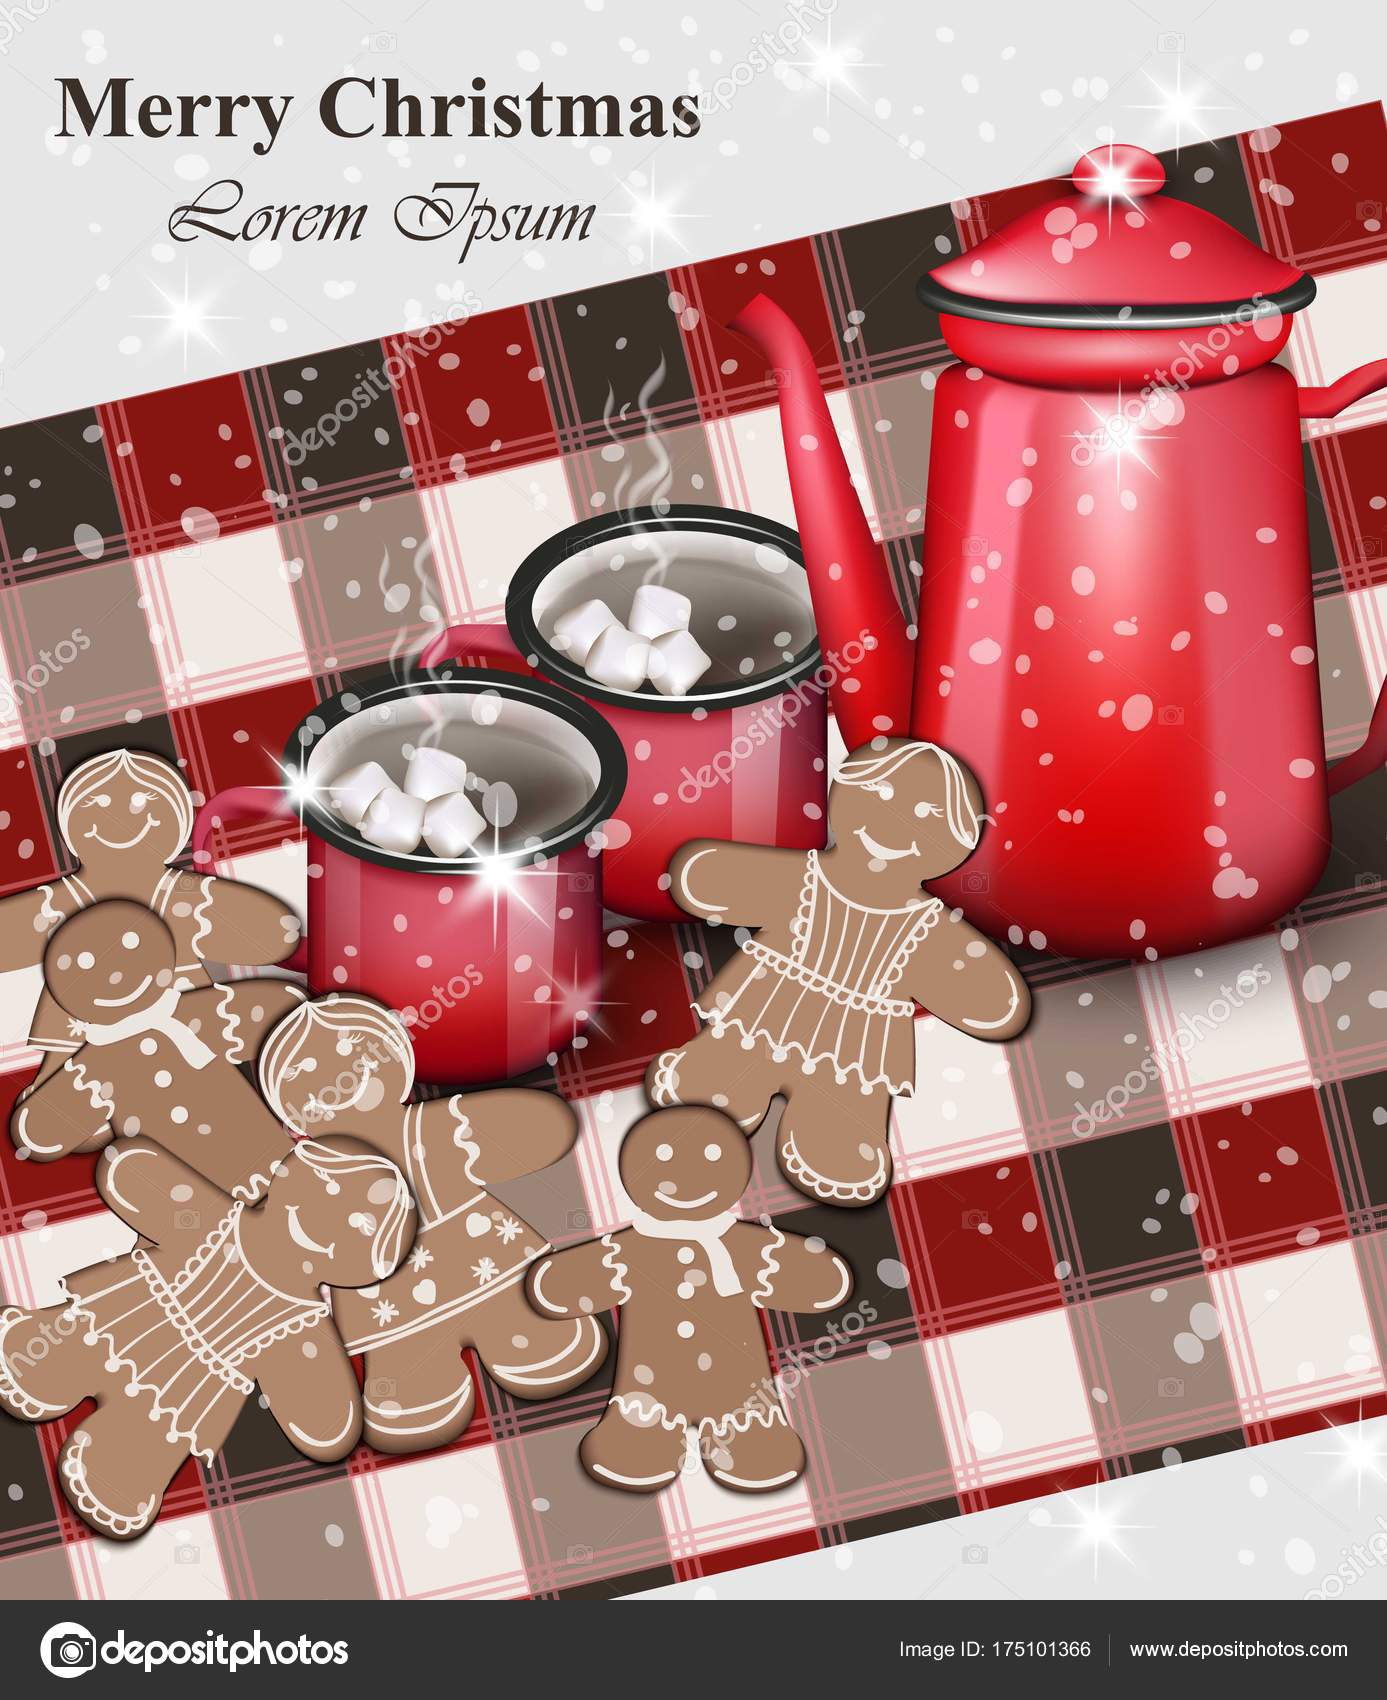 Merry christmas card gingerbread cookies and hot drinks over merry christmas card gingerbread cookies and hot drinks over gingham pattern vintage vector realistic m4hsunfo